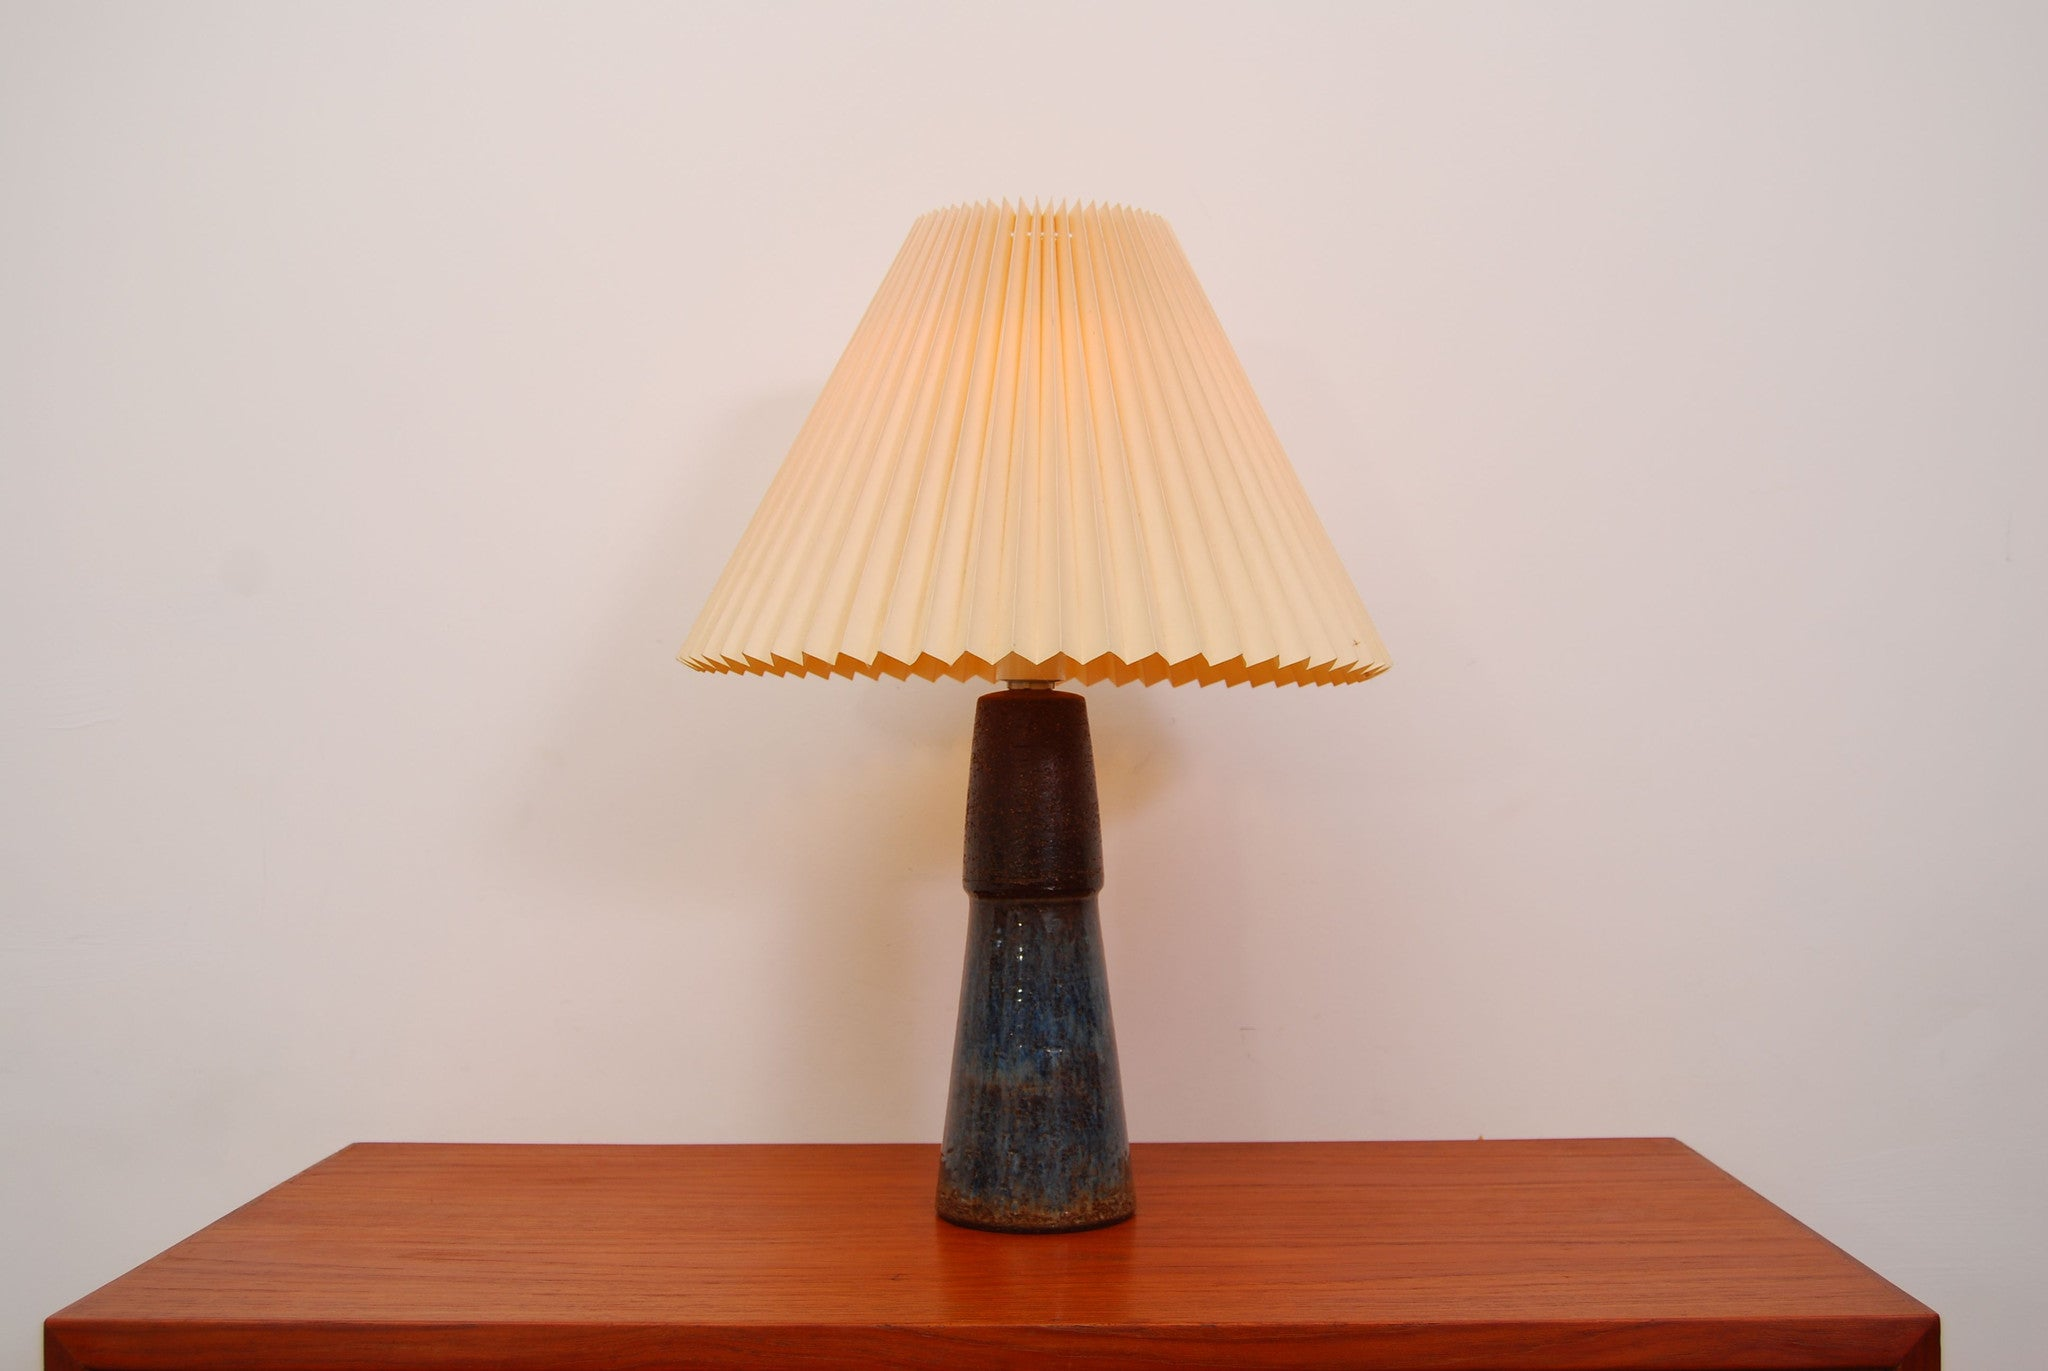 Chase & Sorensen Ceramic table lamp by Soholm Stentoj